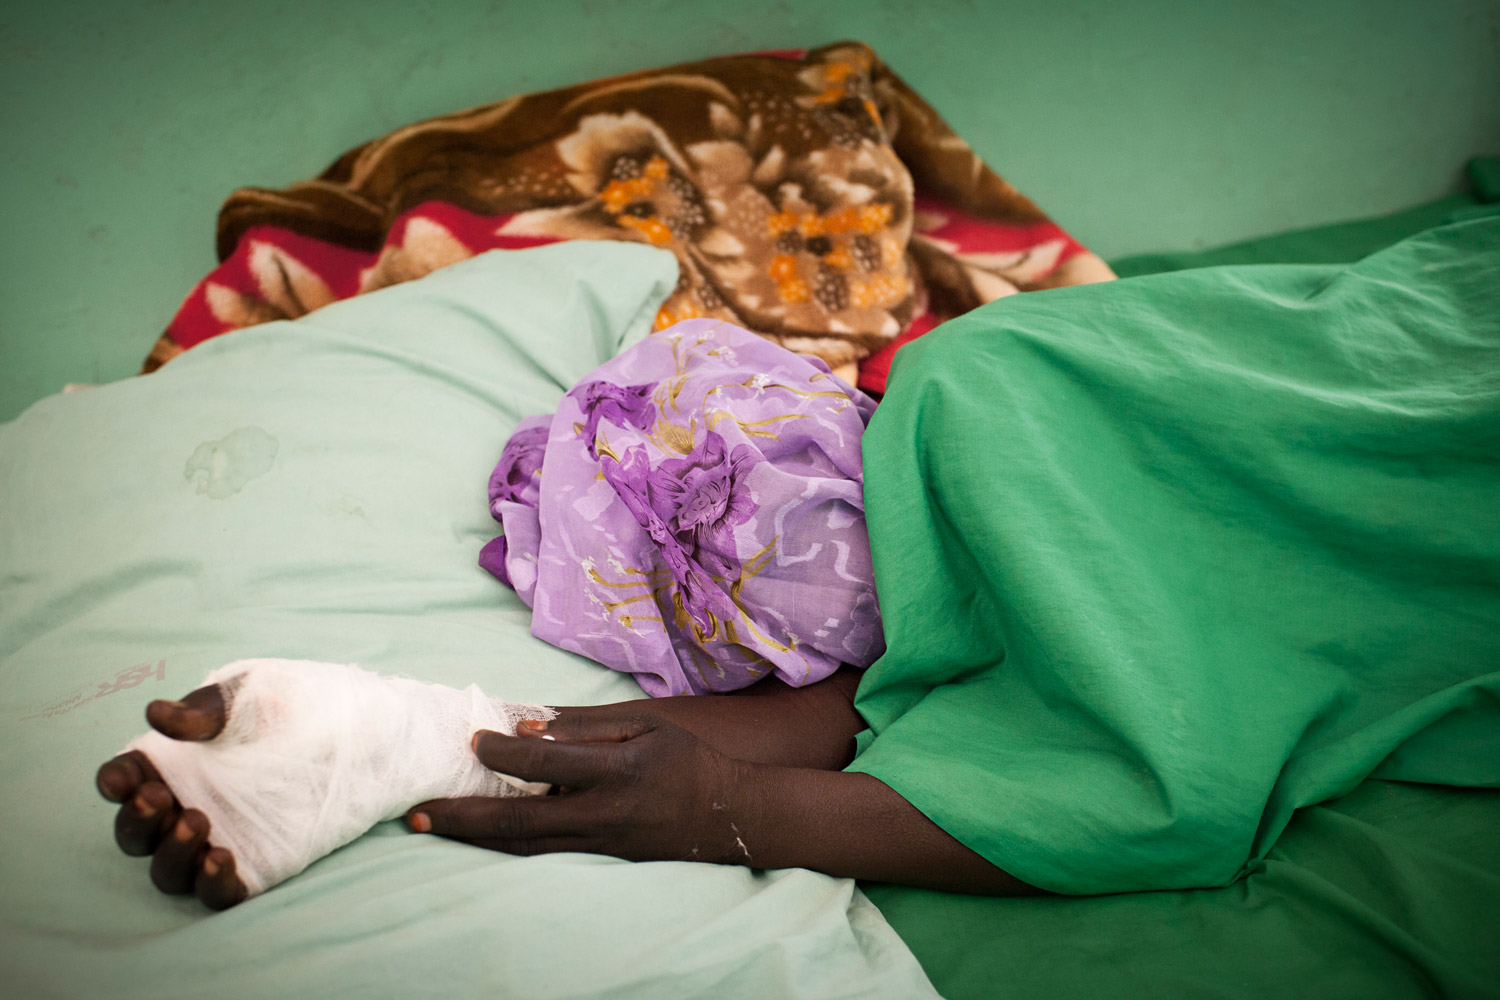 A civilian wounded after her village was bombed by northern Sudanese aircraft rests inside a hospital in the Nuba Mountains, July 2, 2011.